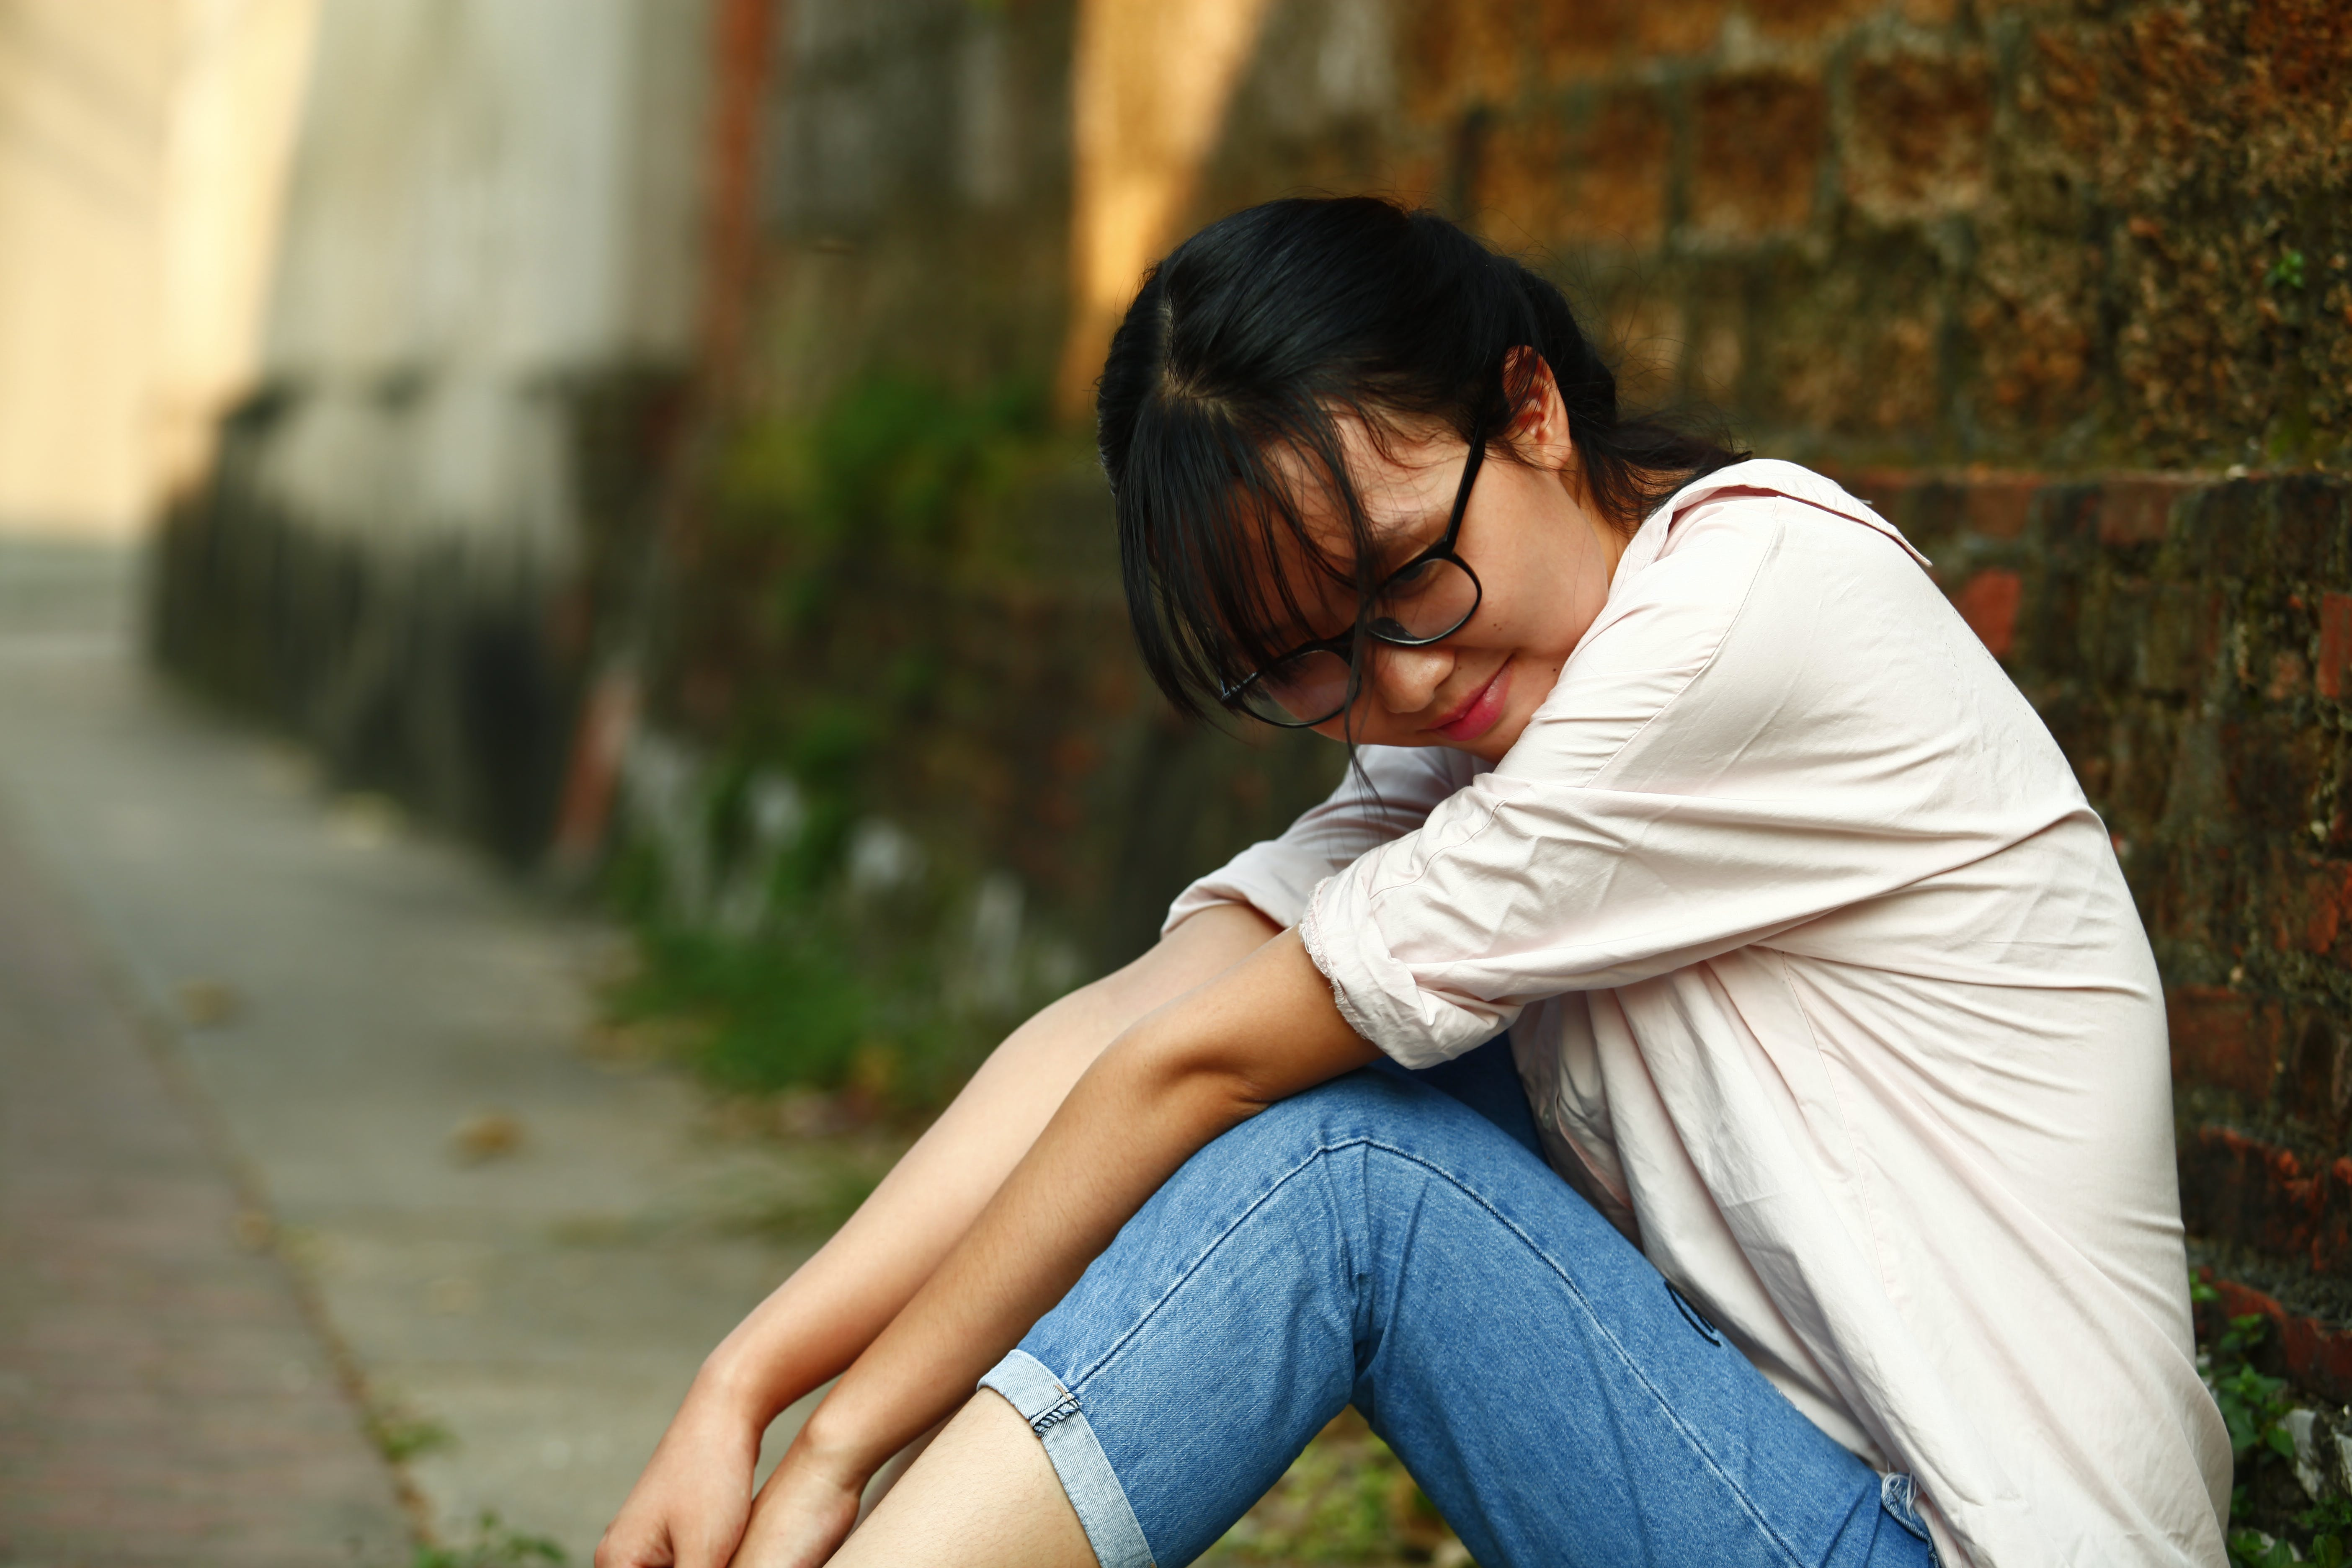 Smiling Woman Sitting Beside Bricked Brown Wall